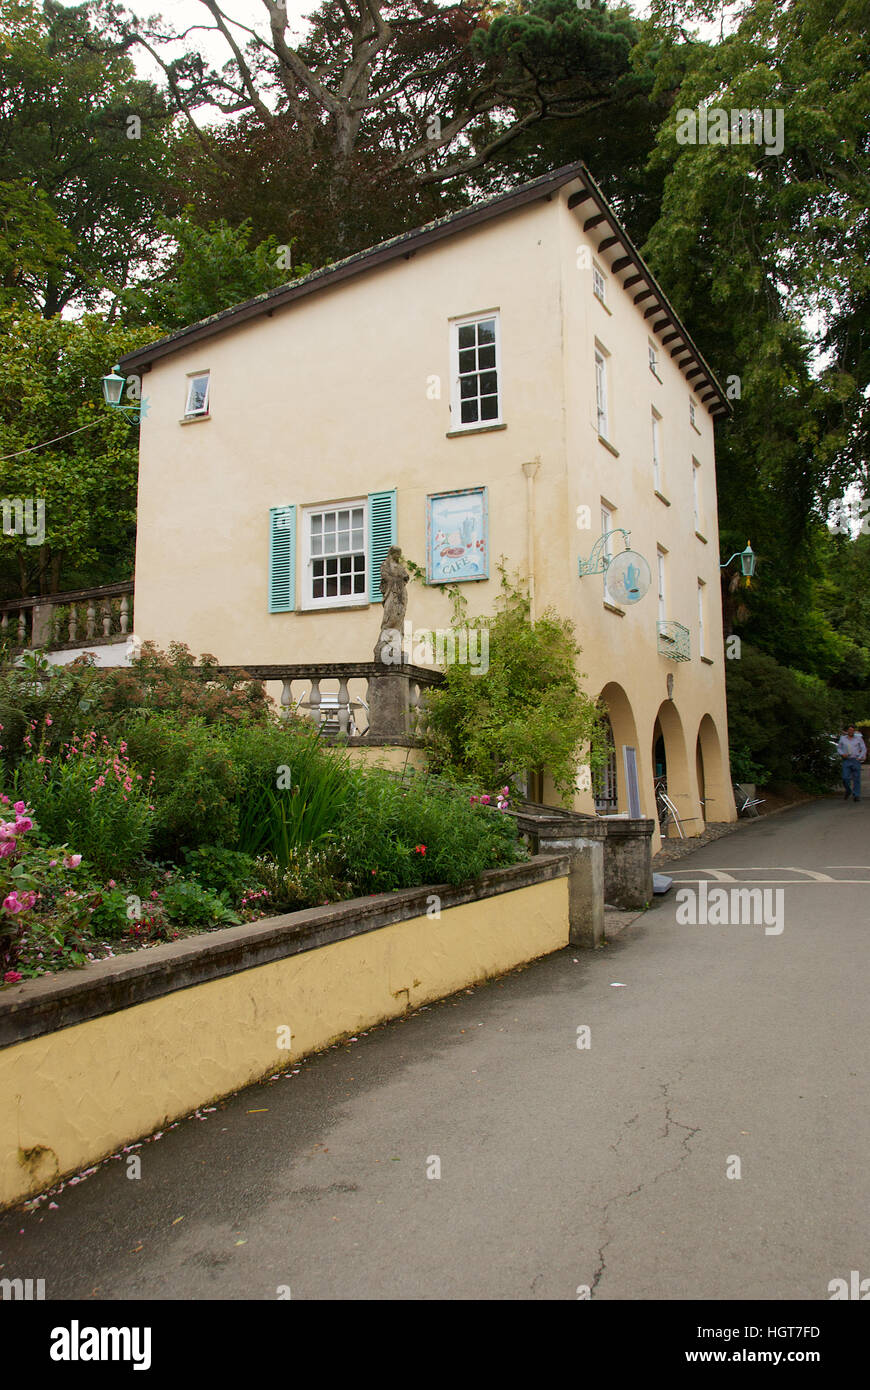 Portmeirion village, Gwynedd, North Wales, U.K. Stock Photo